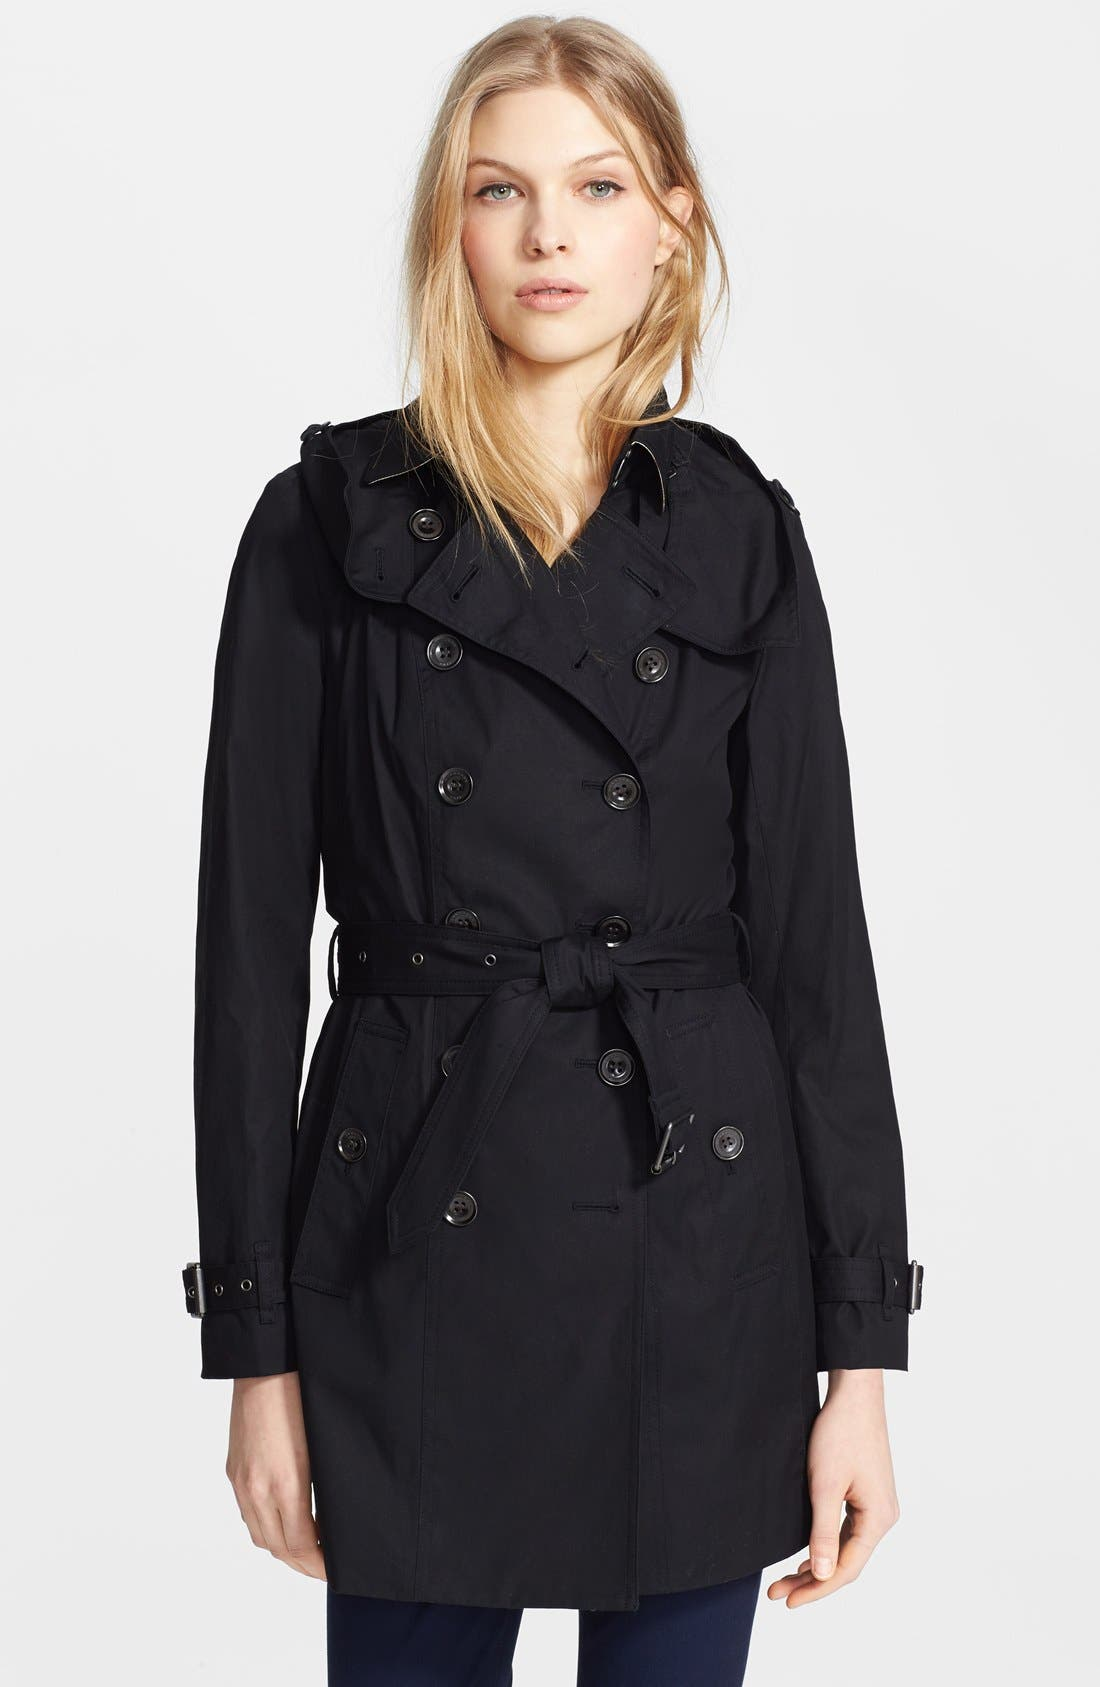 'Reymoore' Trench Coat with Detachable Hood,                             Main thumbnail 1, color,                             001